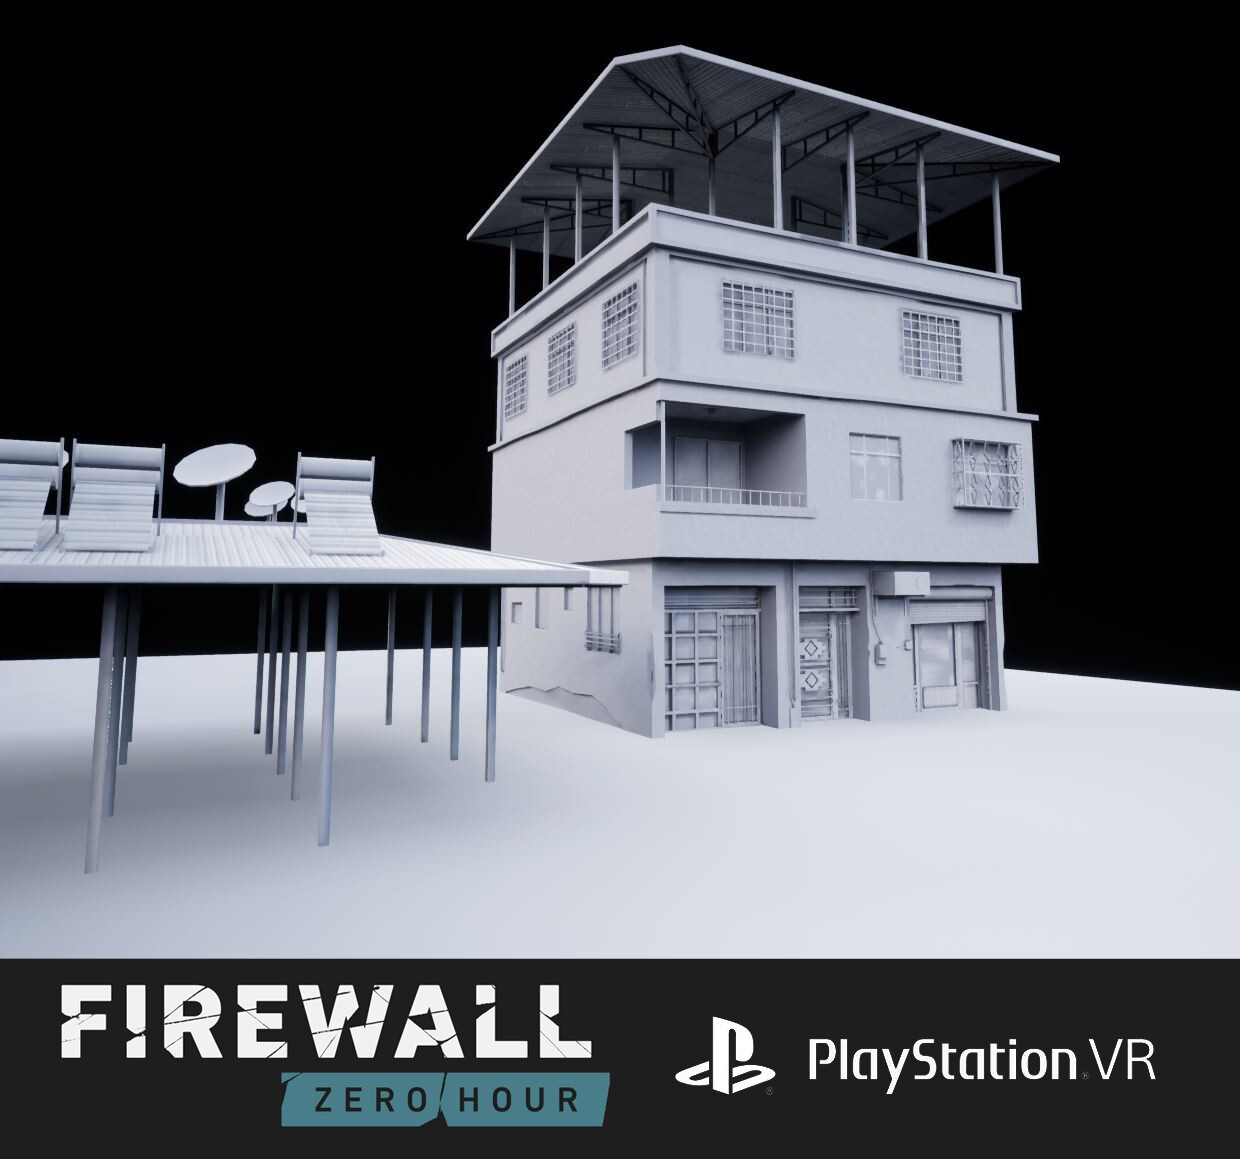 FireWall:Zero Hour PlayStation VR assets